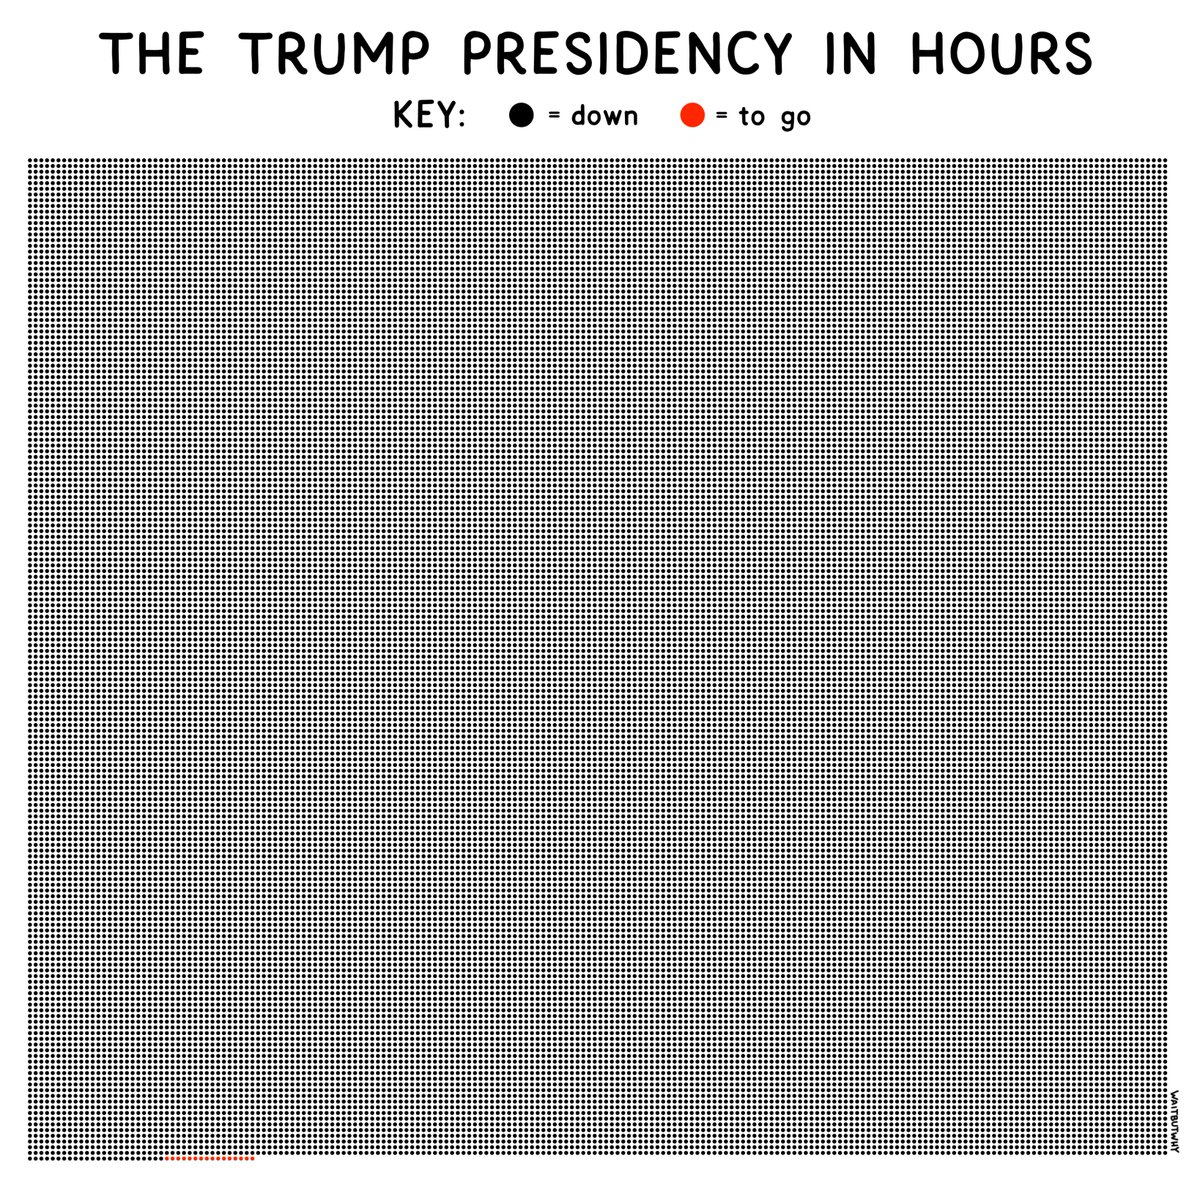 Replying to @waitbutwhy: The Trump presidency in hours